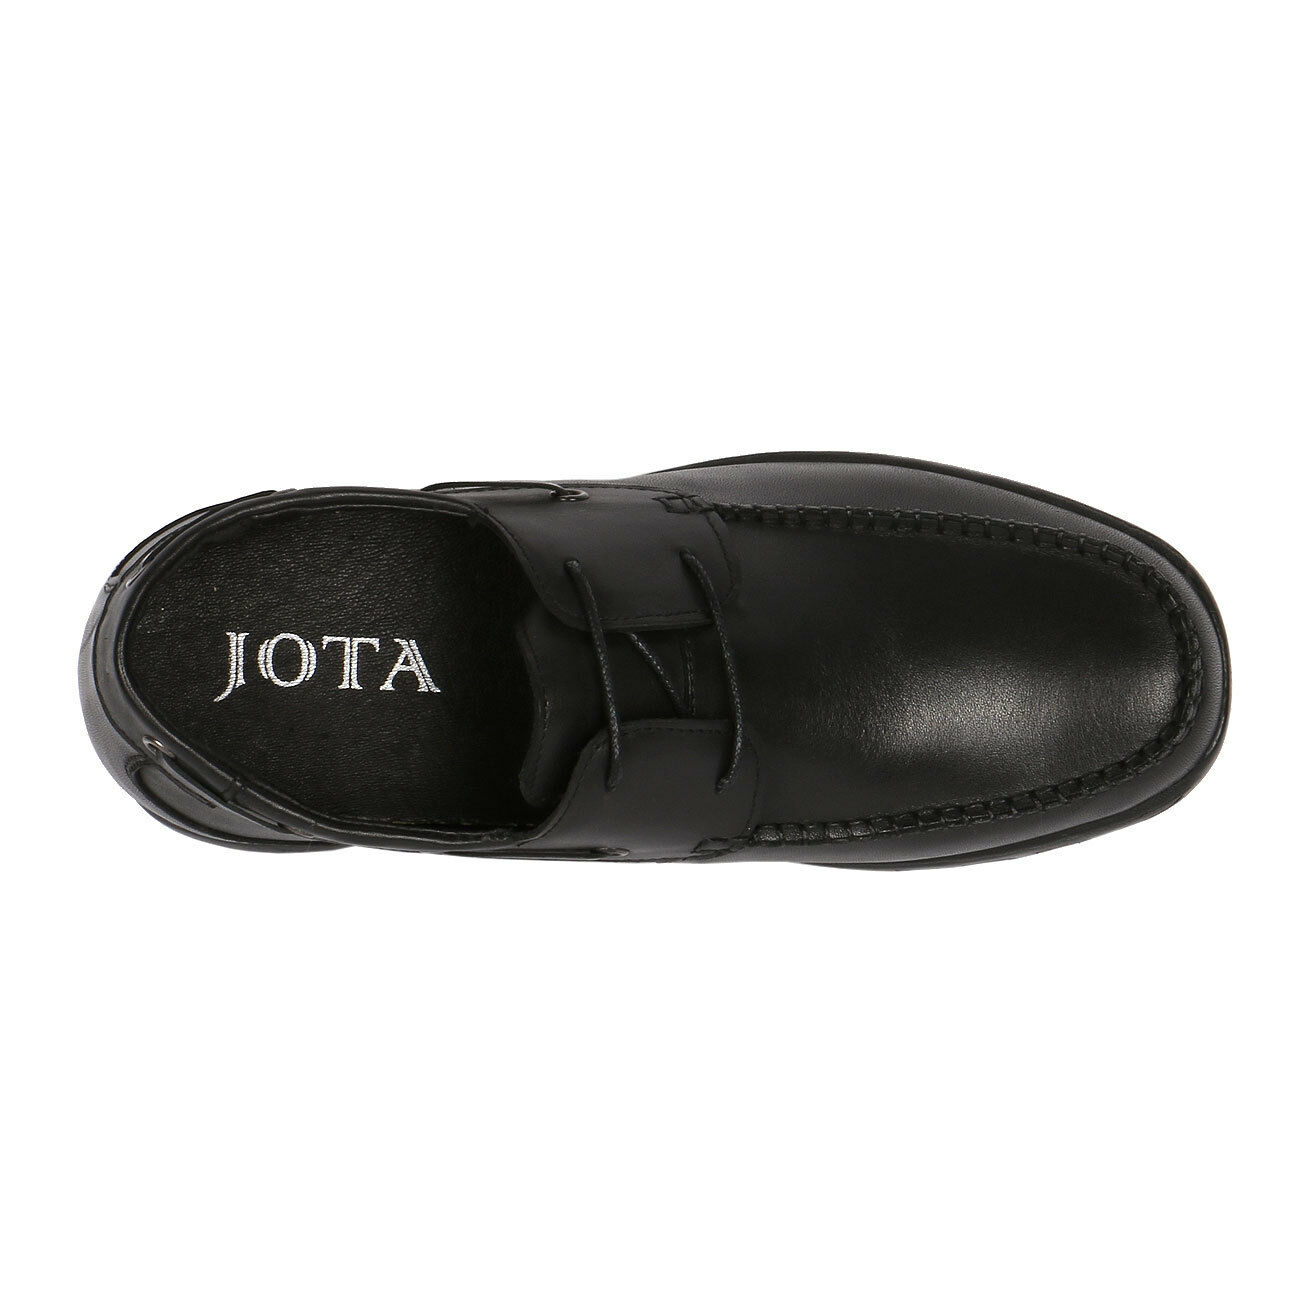 JOTA's Tall Men Schuhes Elevator Combination Casual Boat Schuhes Men 3